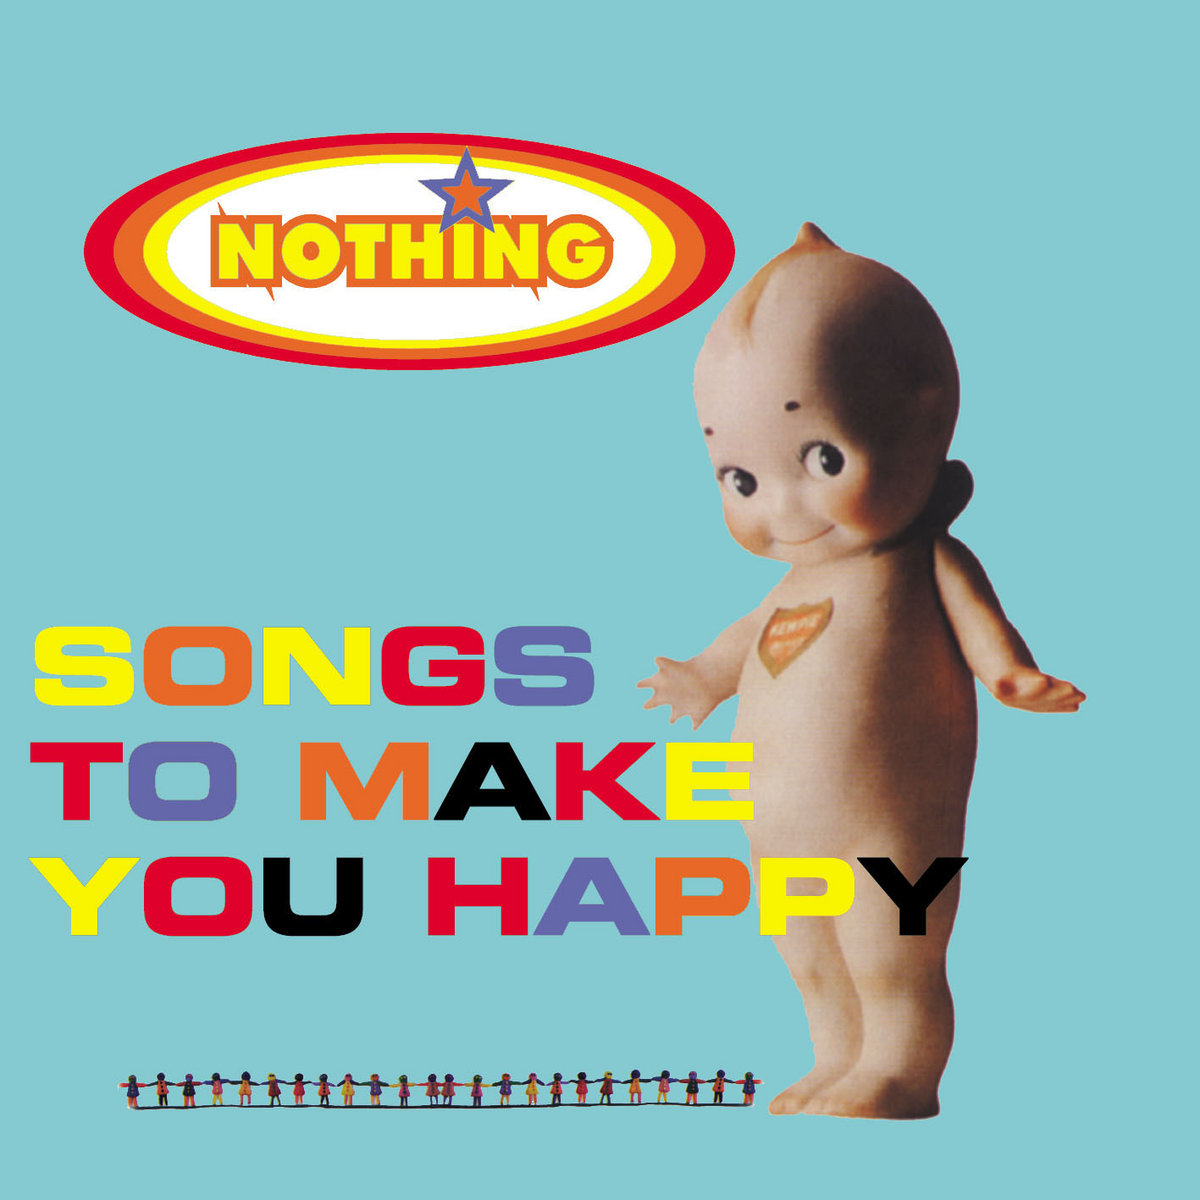 Songs To Make You Happy | NOTHING | Elefant Records - Classics